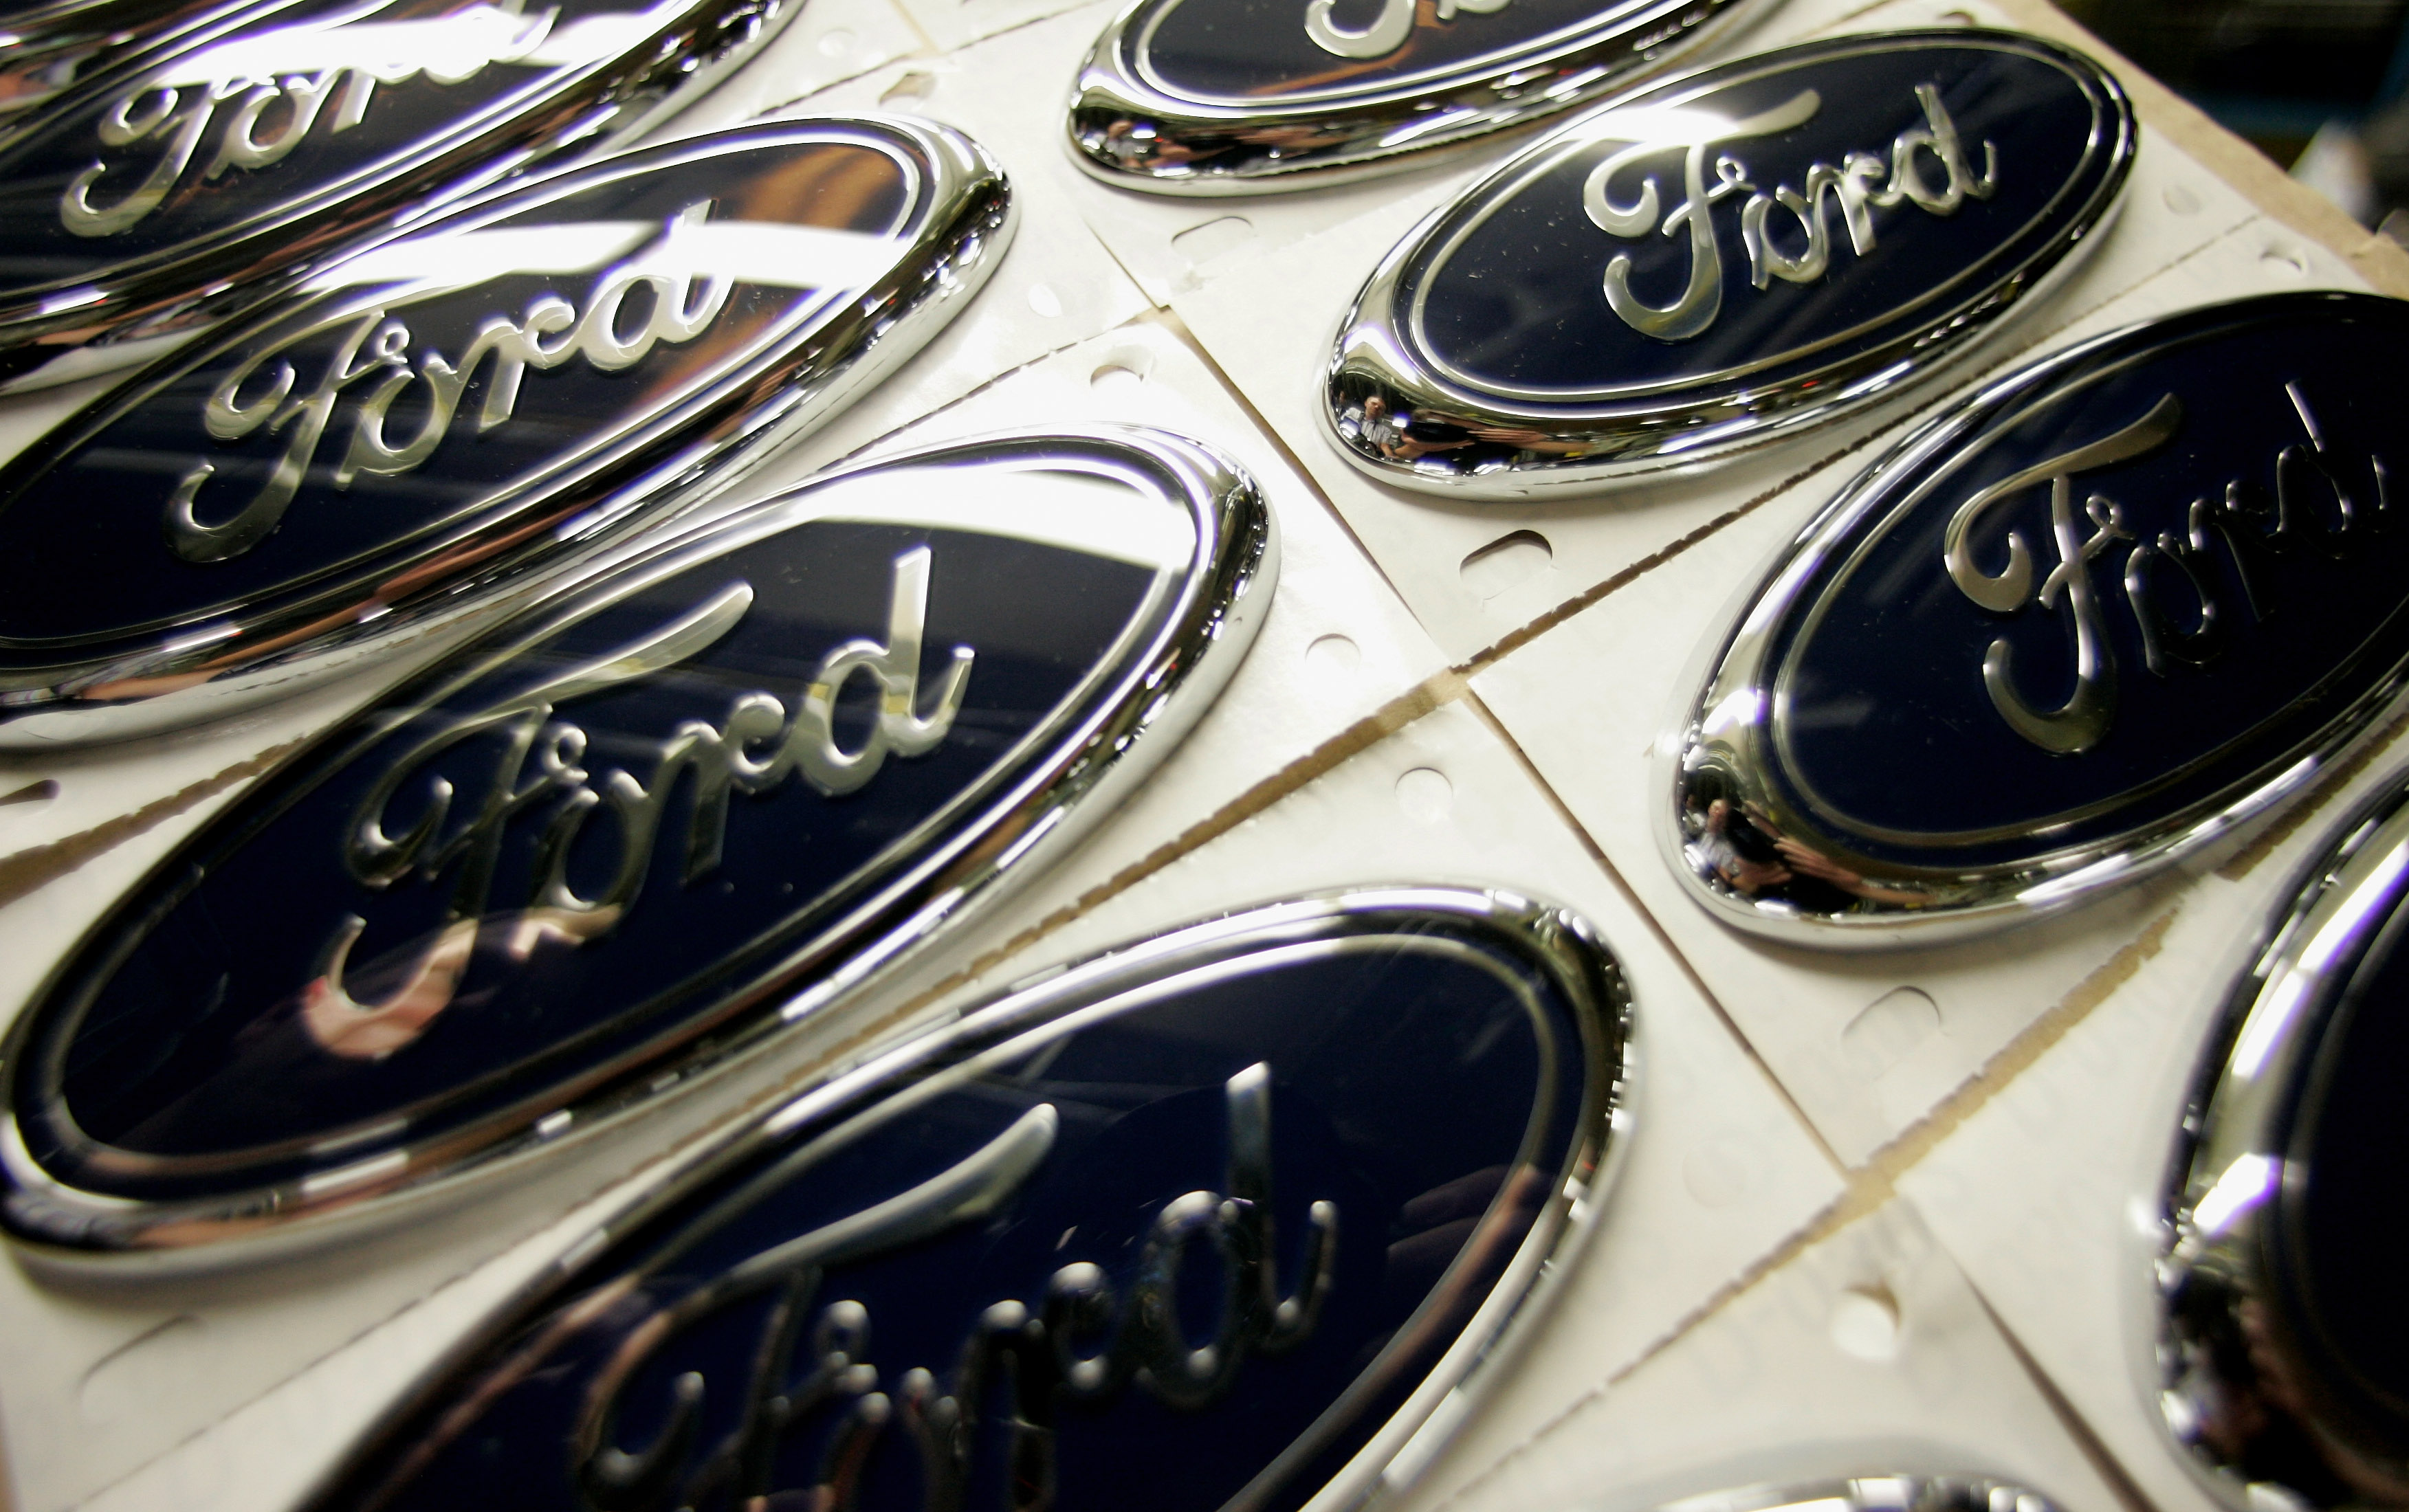 SAARLOUIS, GERMANY - APRIL 16:  Logos are pictured at the production line of a Ford Focus at the Ford plant on April 16, 2007 in Saarlouis, Germany. Ford Motor Co. the world's third - largest carmaker produces 1900 vehicles a day in Saarlouis, this is after last year's reorganization which reduced the number of Ford Plants in Europe from eleven to six.  (Photo by Ralph Orlowski/Getty Images)